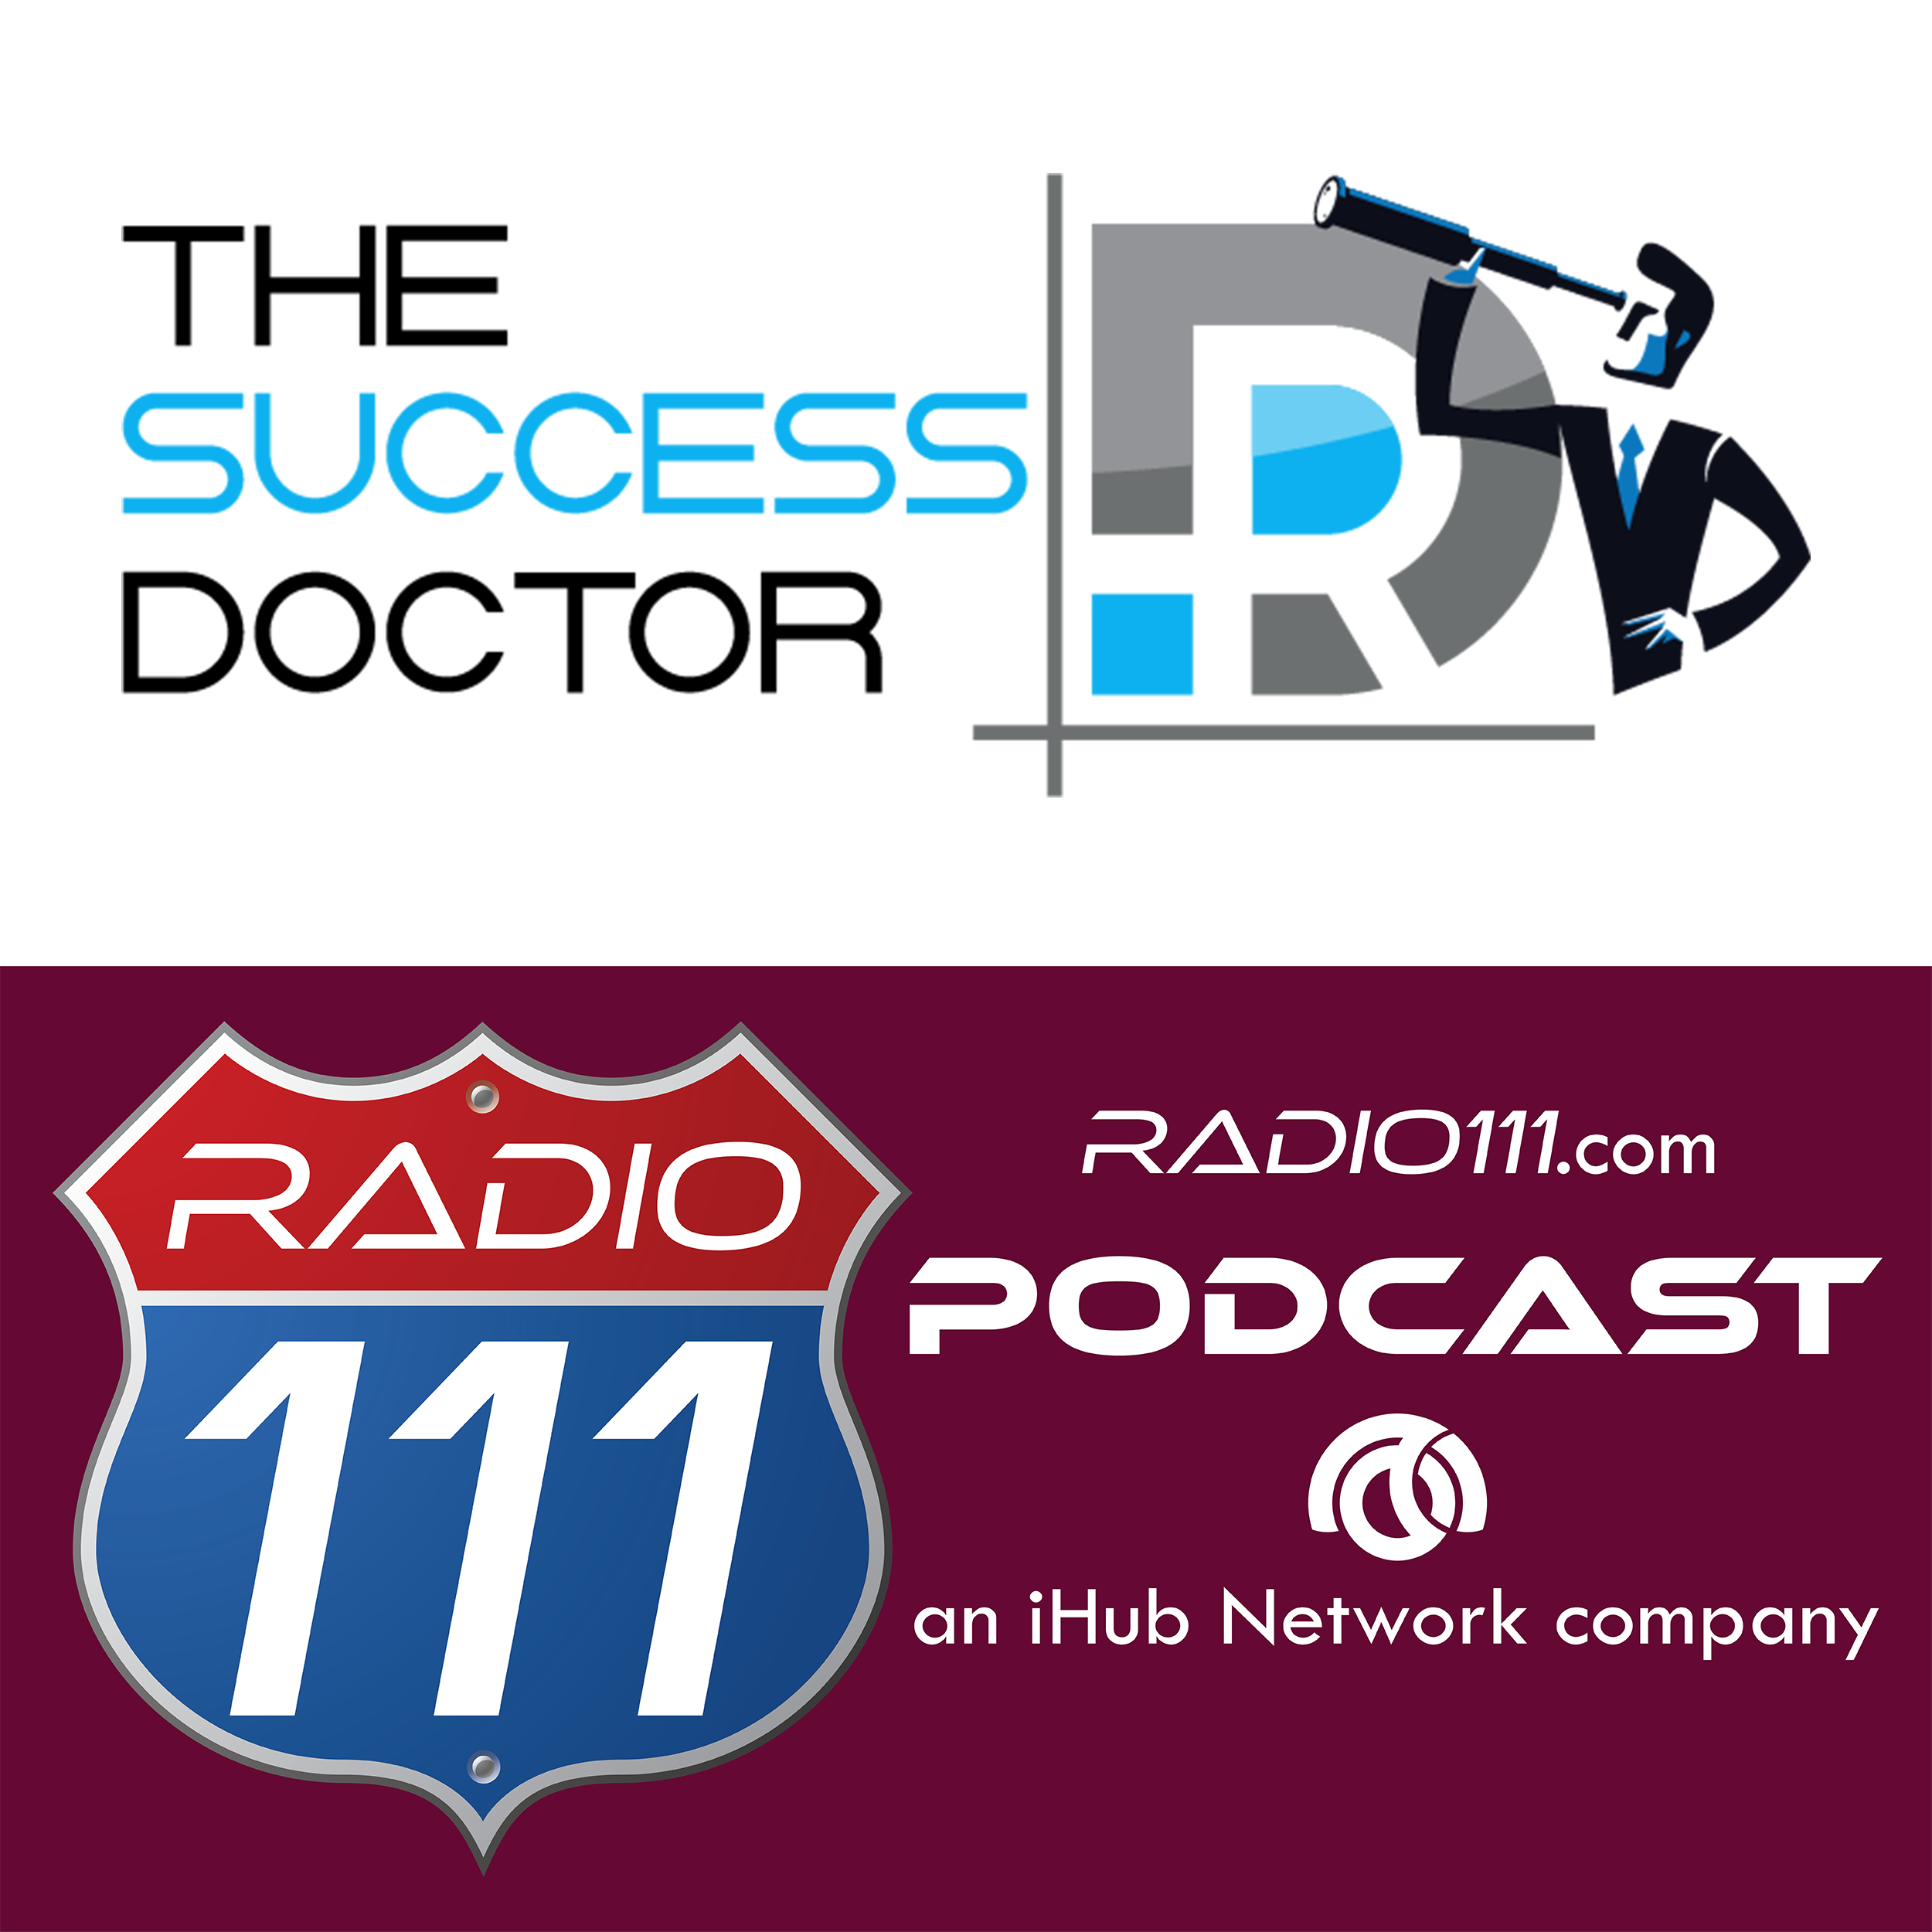 Artwork for podcast The Success Doctor